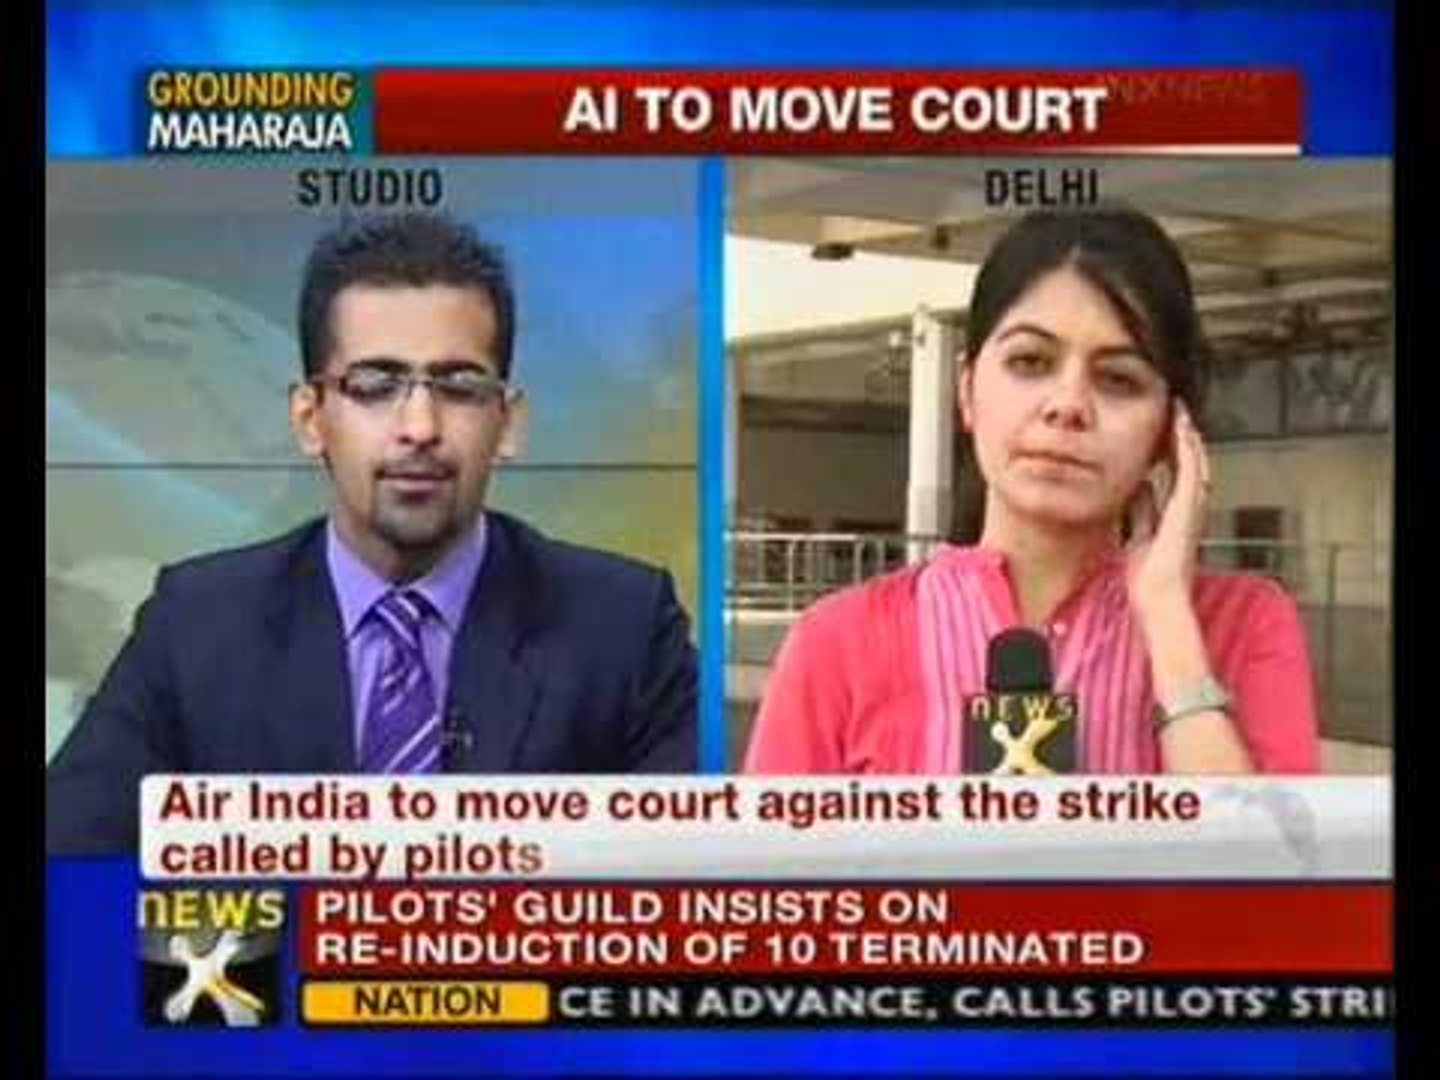 Air India may move court against pilots' strike - NewsX